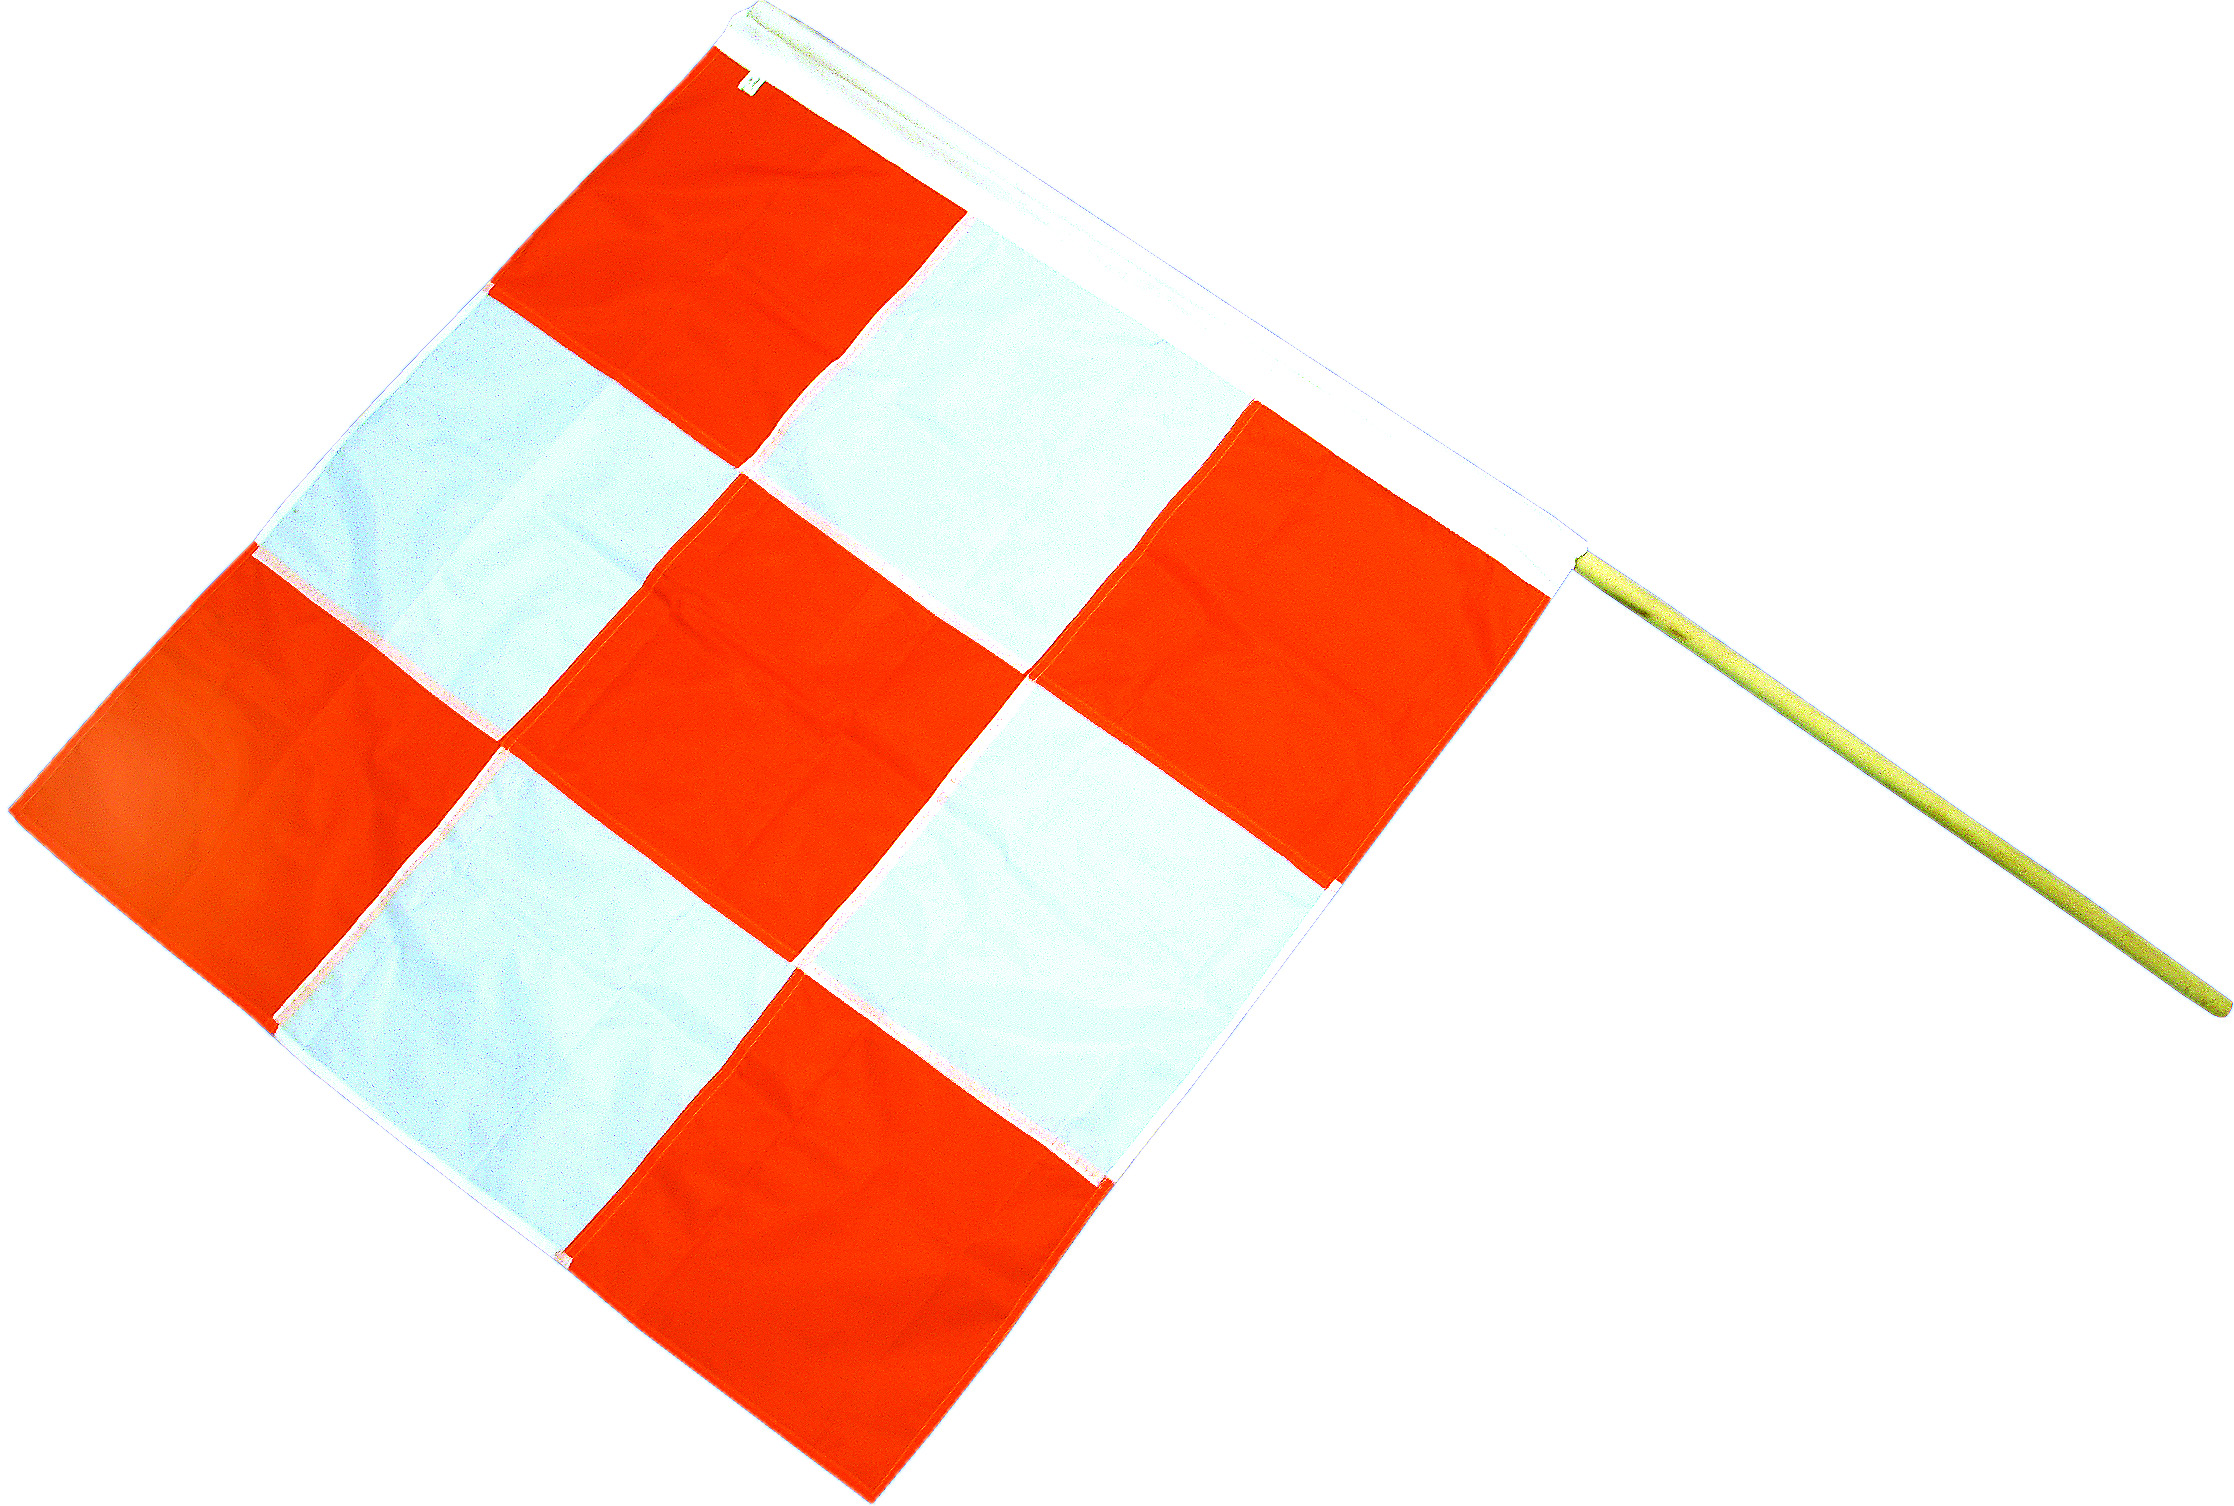 14977-5, Heavy-Duty Nylon Airport Flag with 60 in. Staff, 36 in. Length x 36 in. Width, Orange/White, Mutual Industries